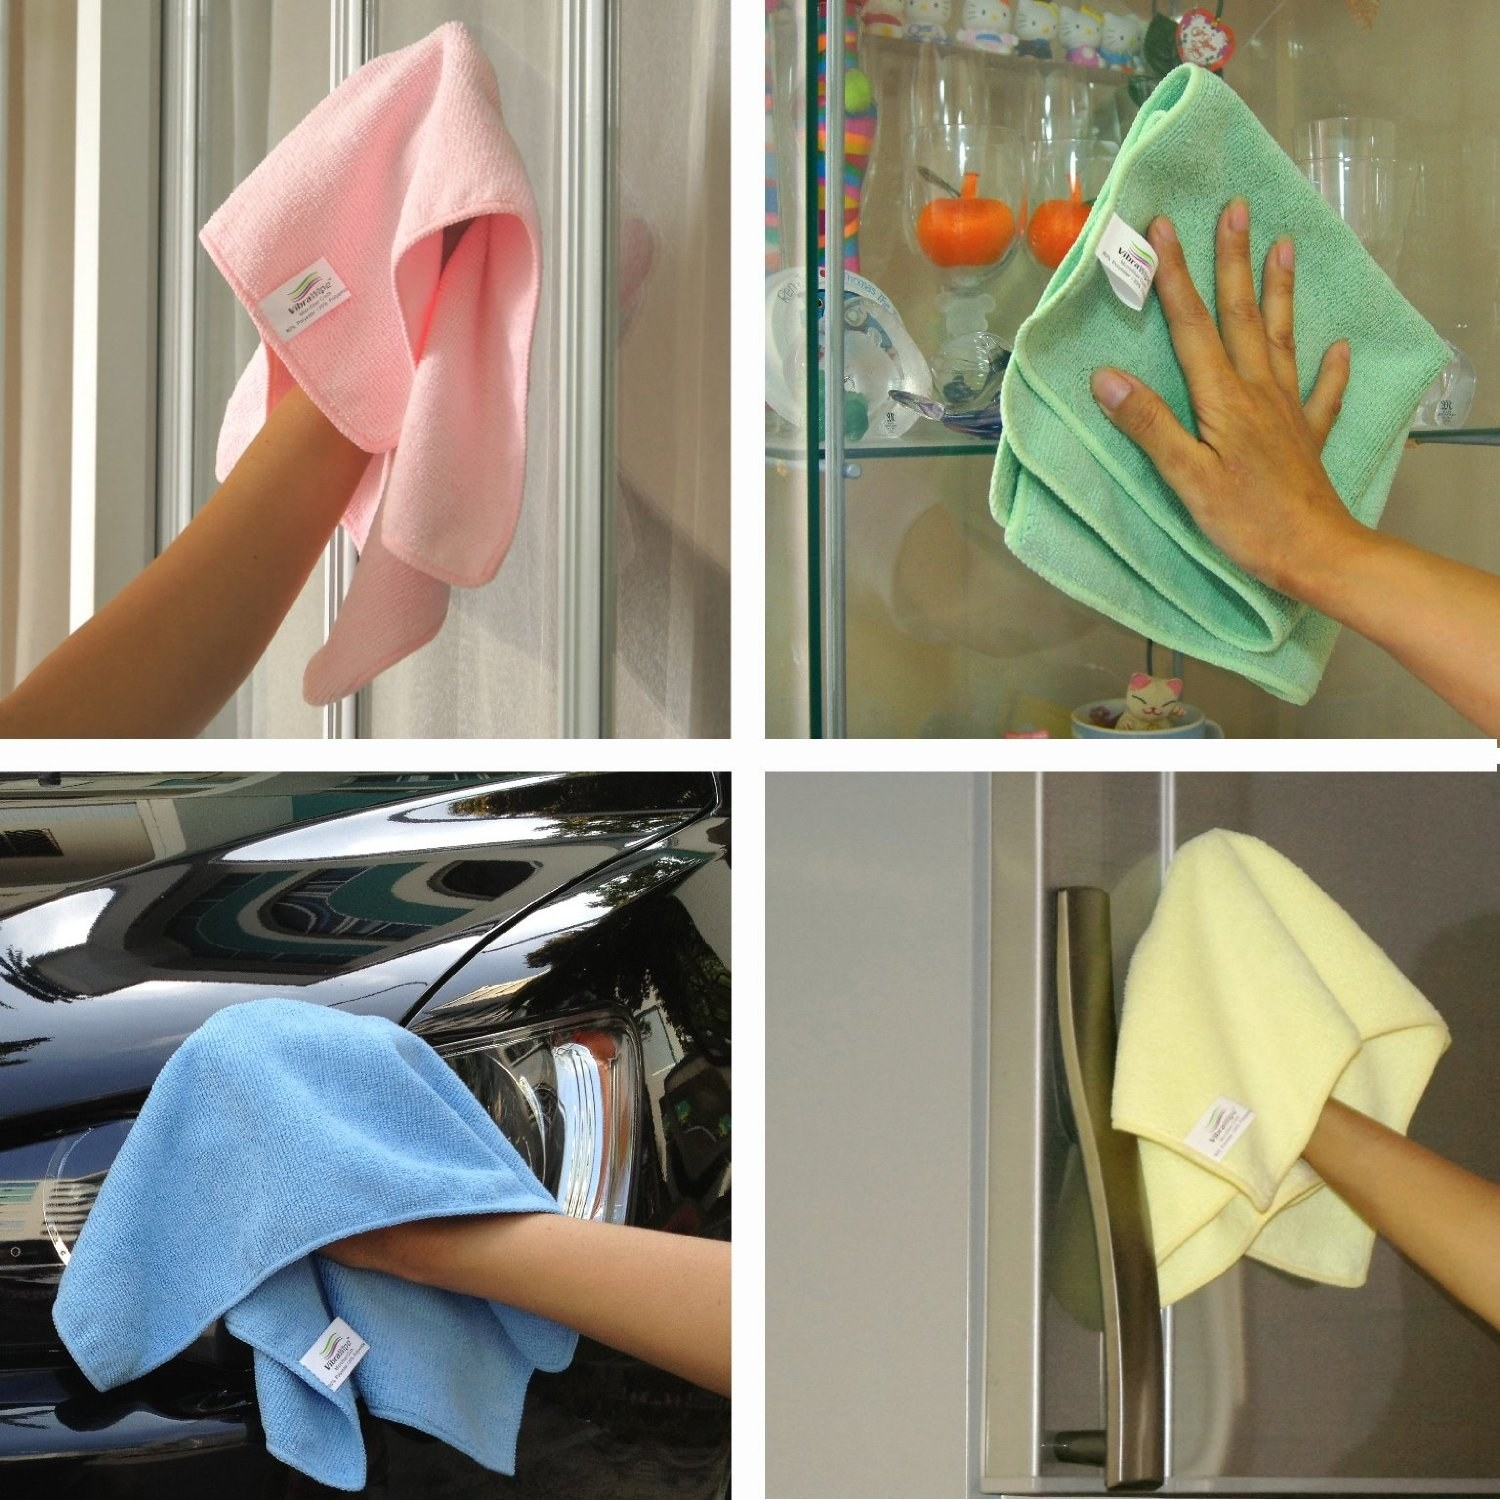 hands using the microfiber cloths to wipe down window and shower glass, car headlights, and stainless steel